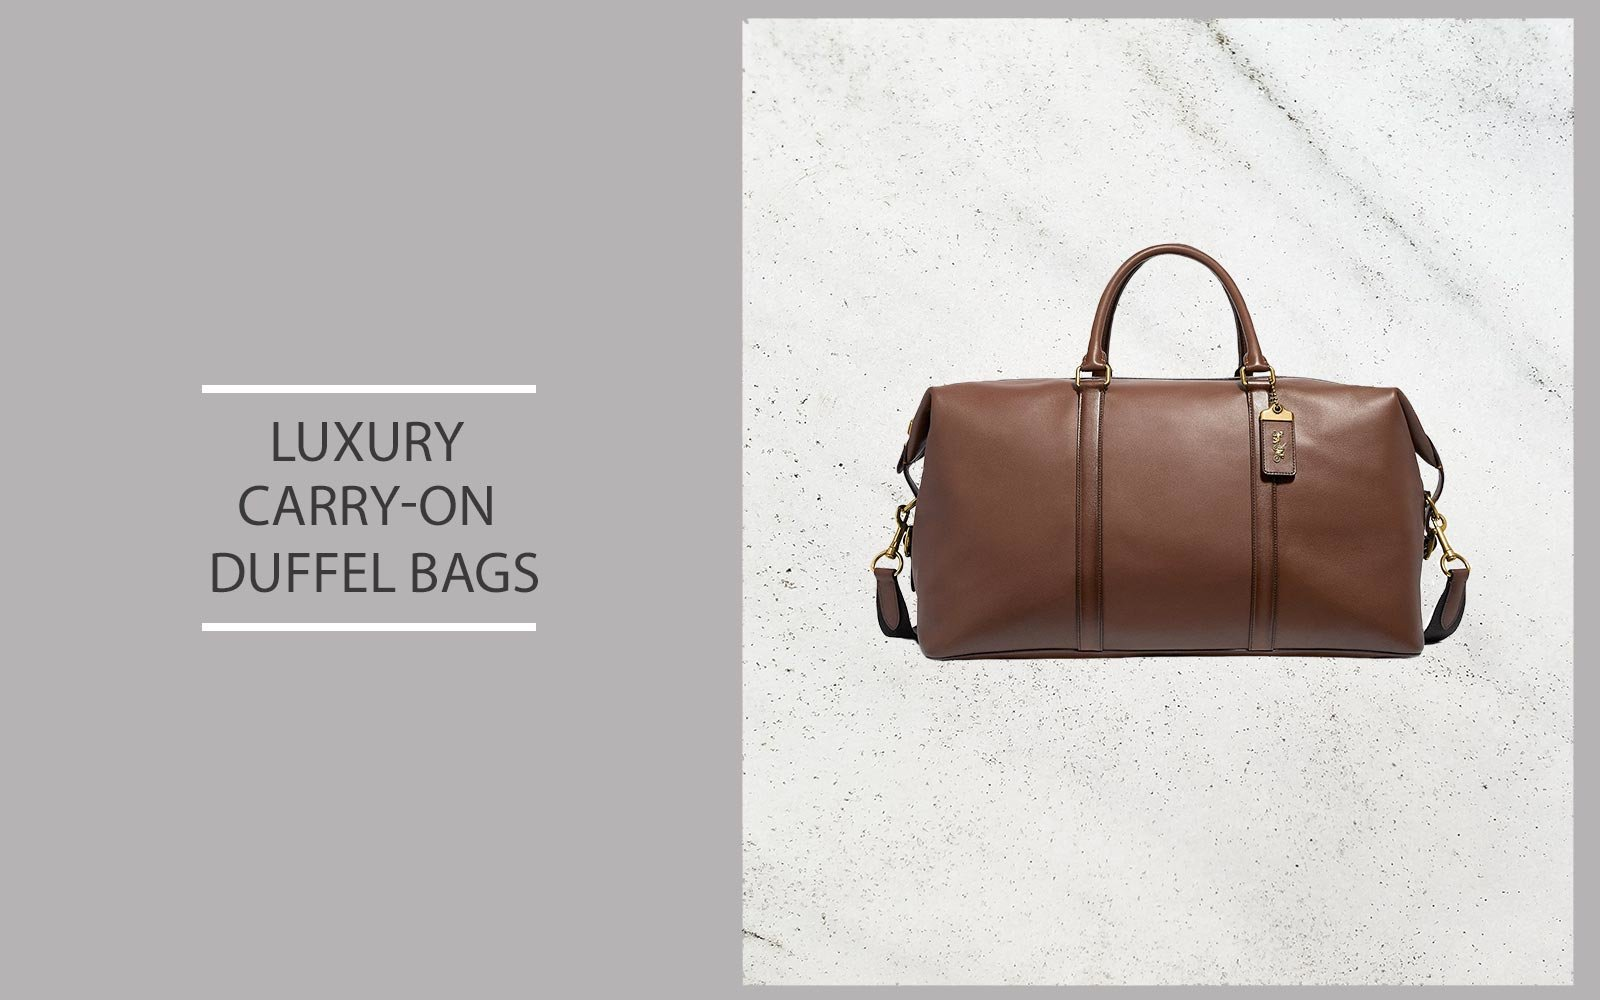 Luxury Carry-on Duffel Bags